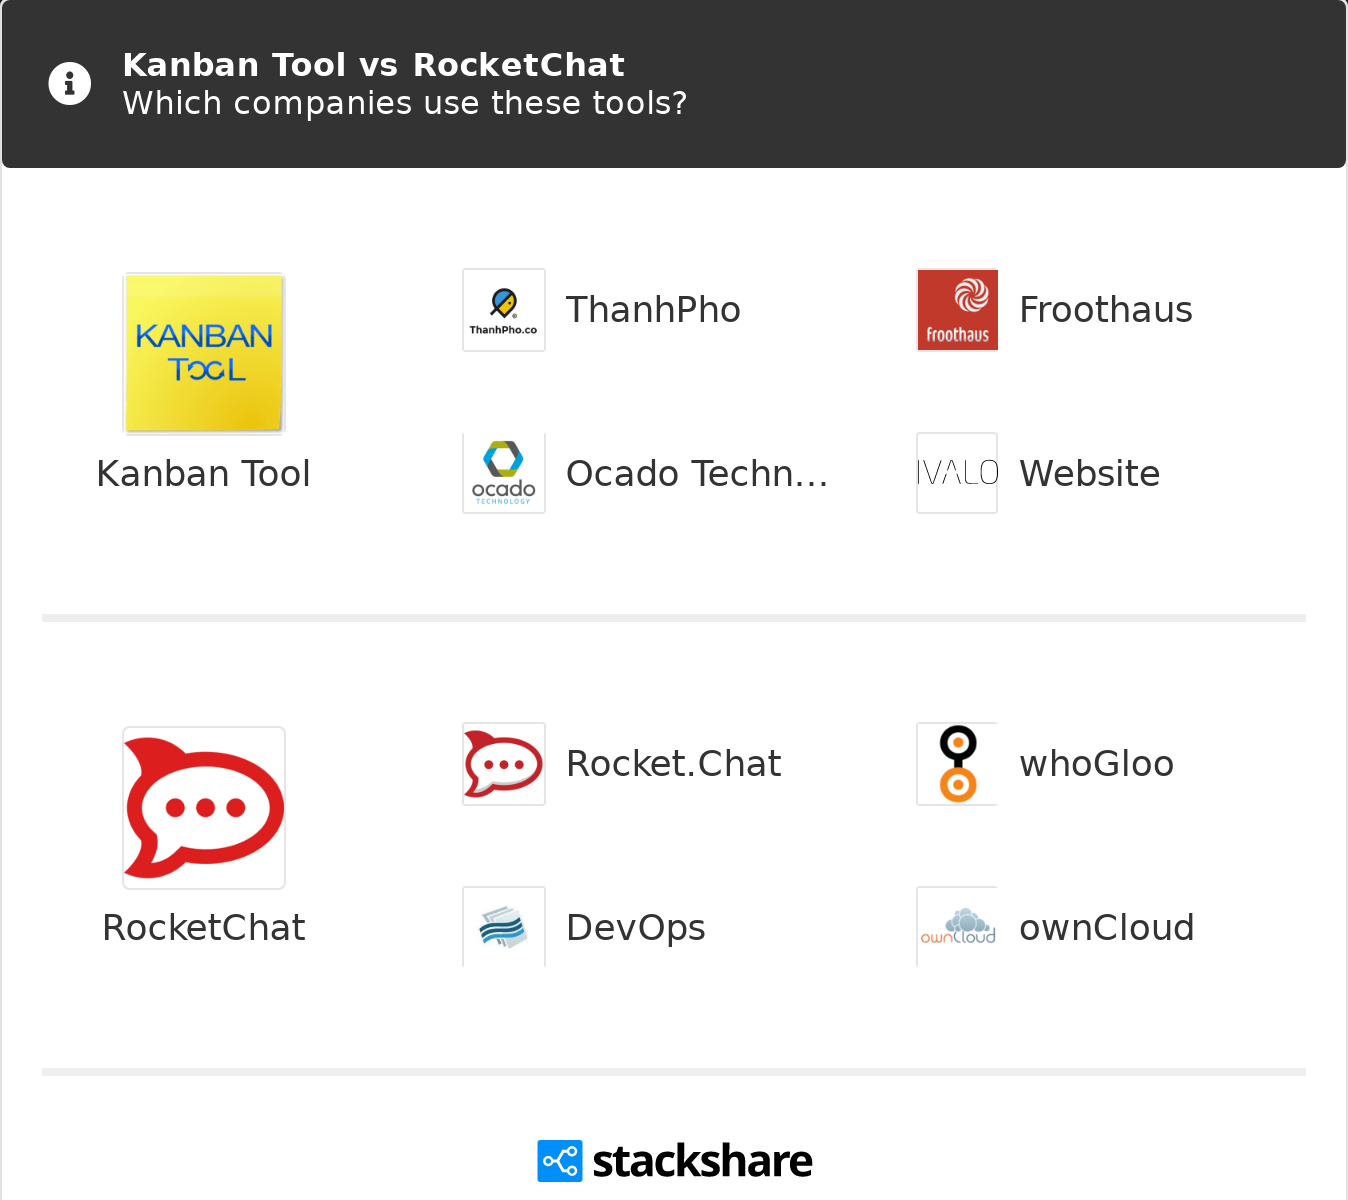 Kanban Tool vs RocketChat   What are the differences?